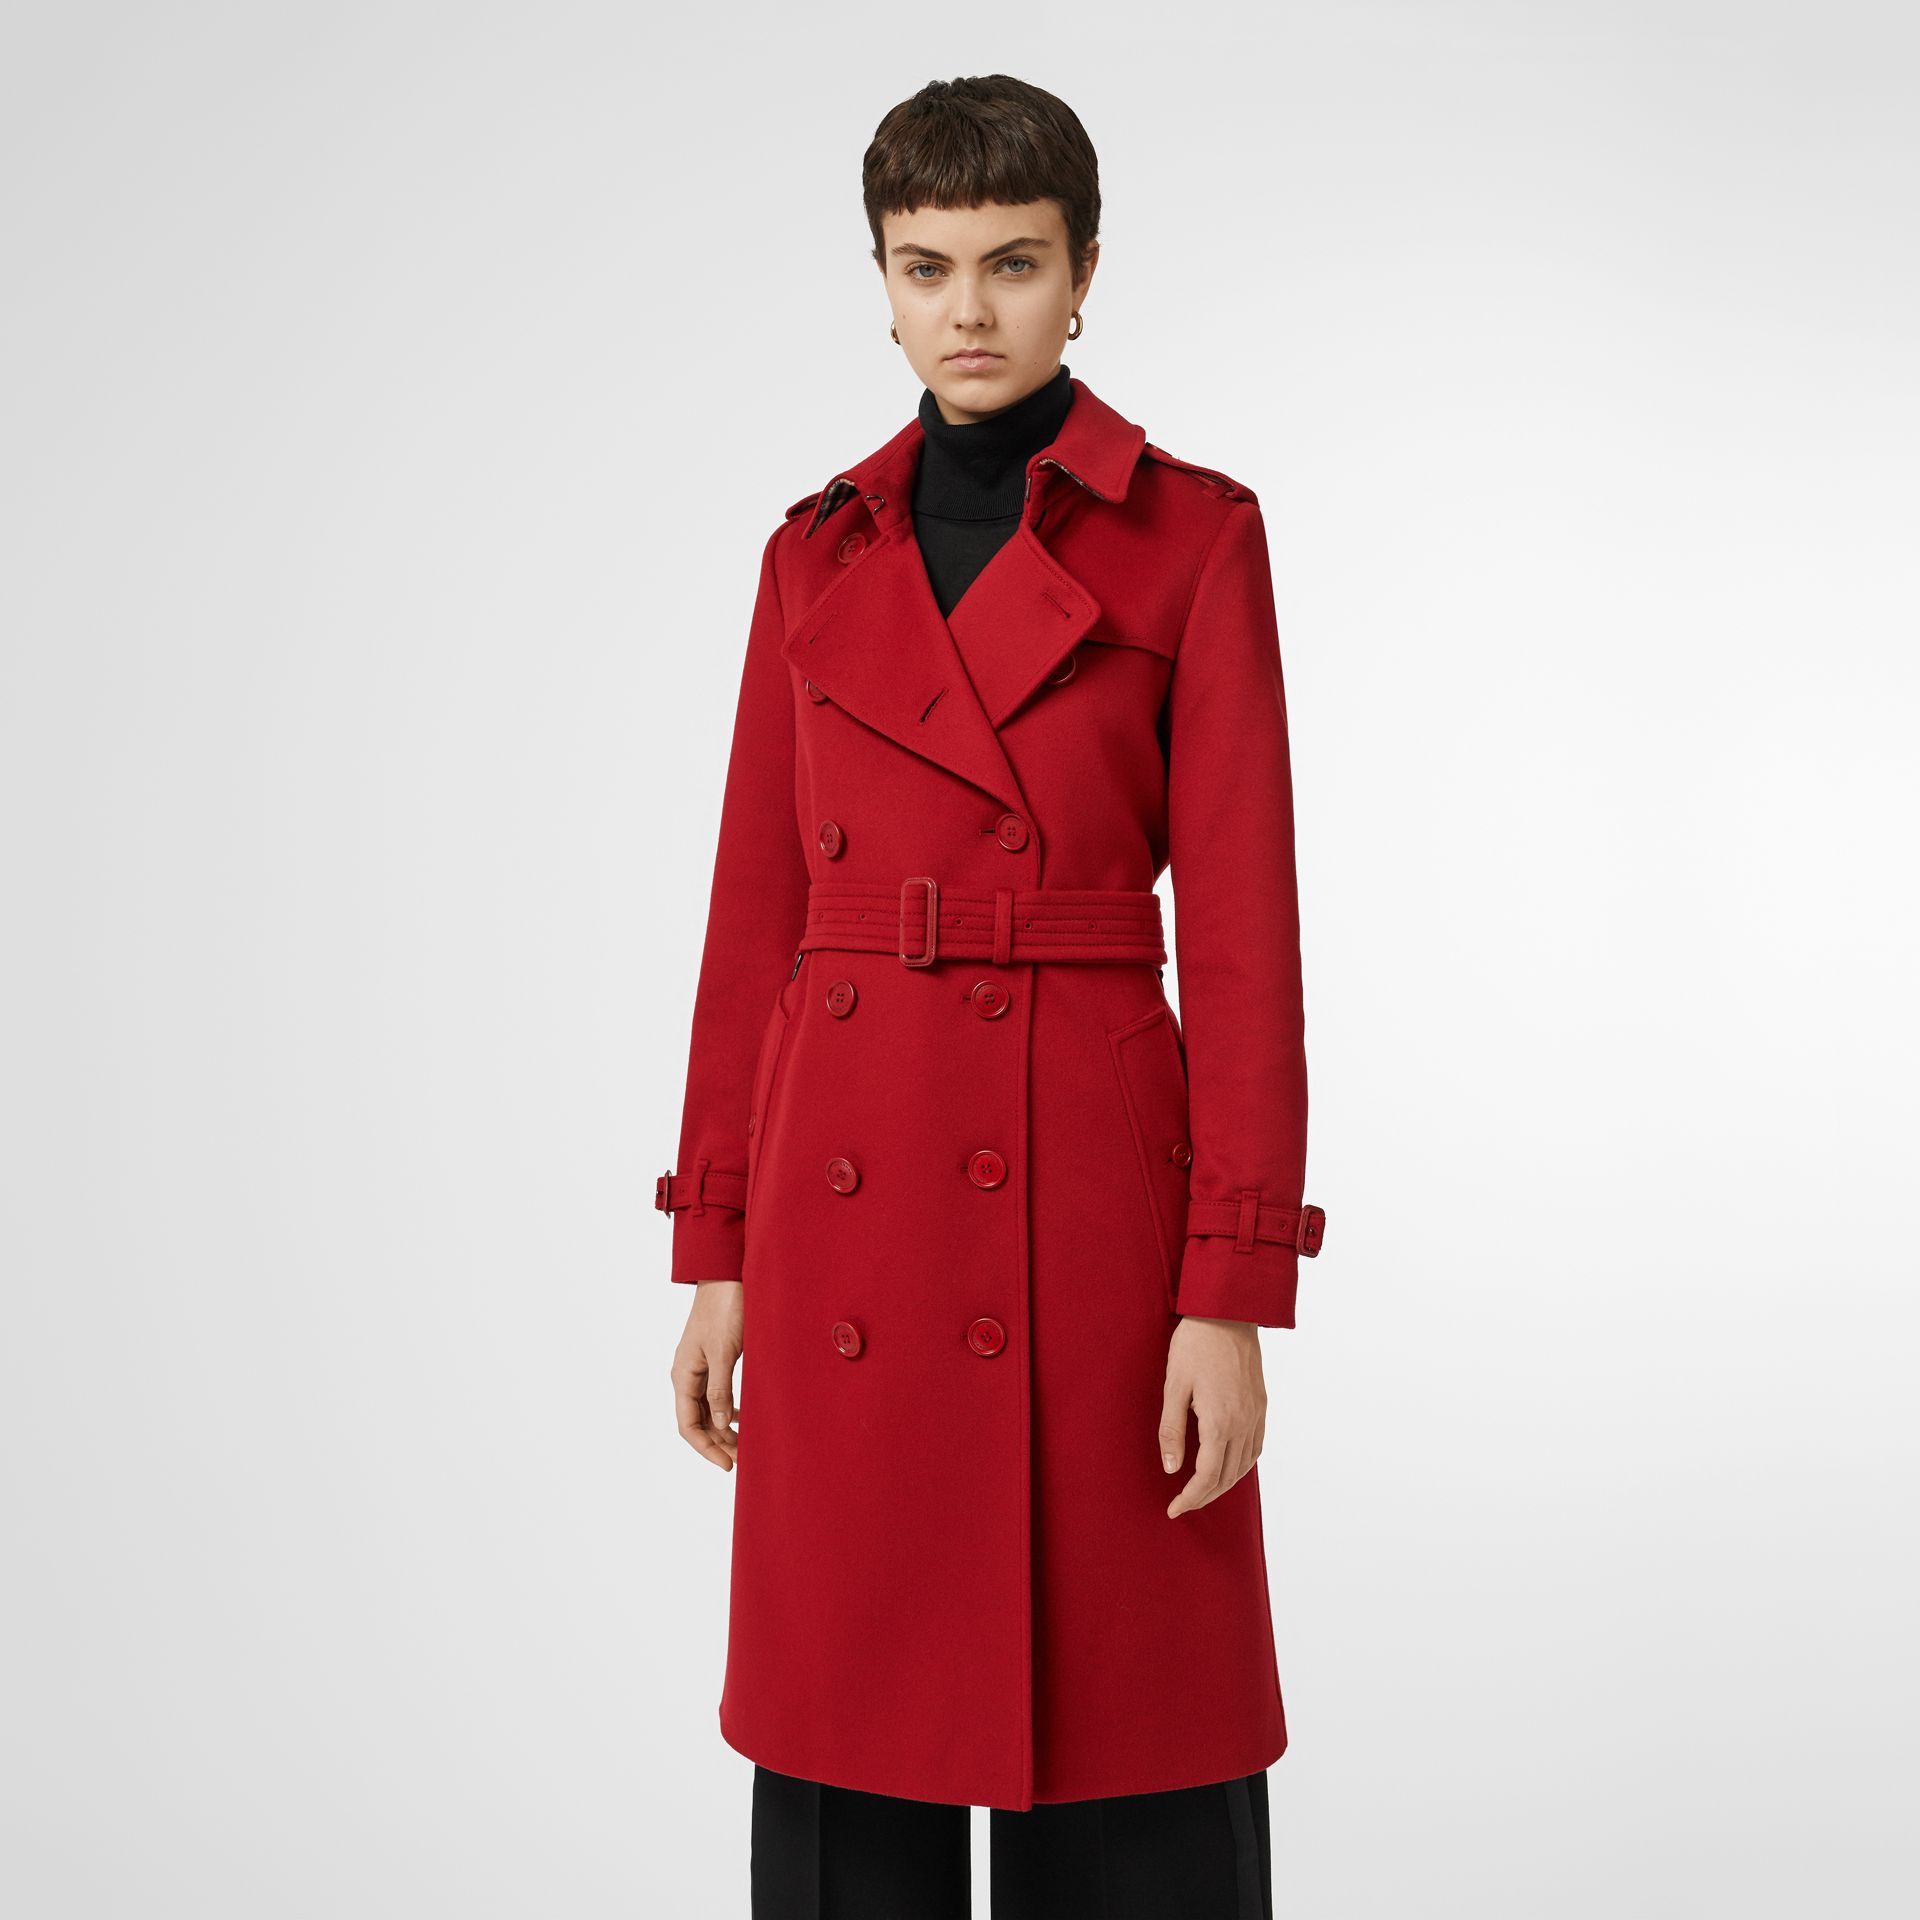 Cashmere Trench Coat in Red - Women | Burberry United Kingdom - gallery image 6